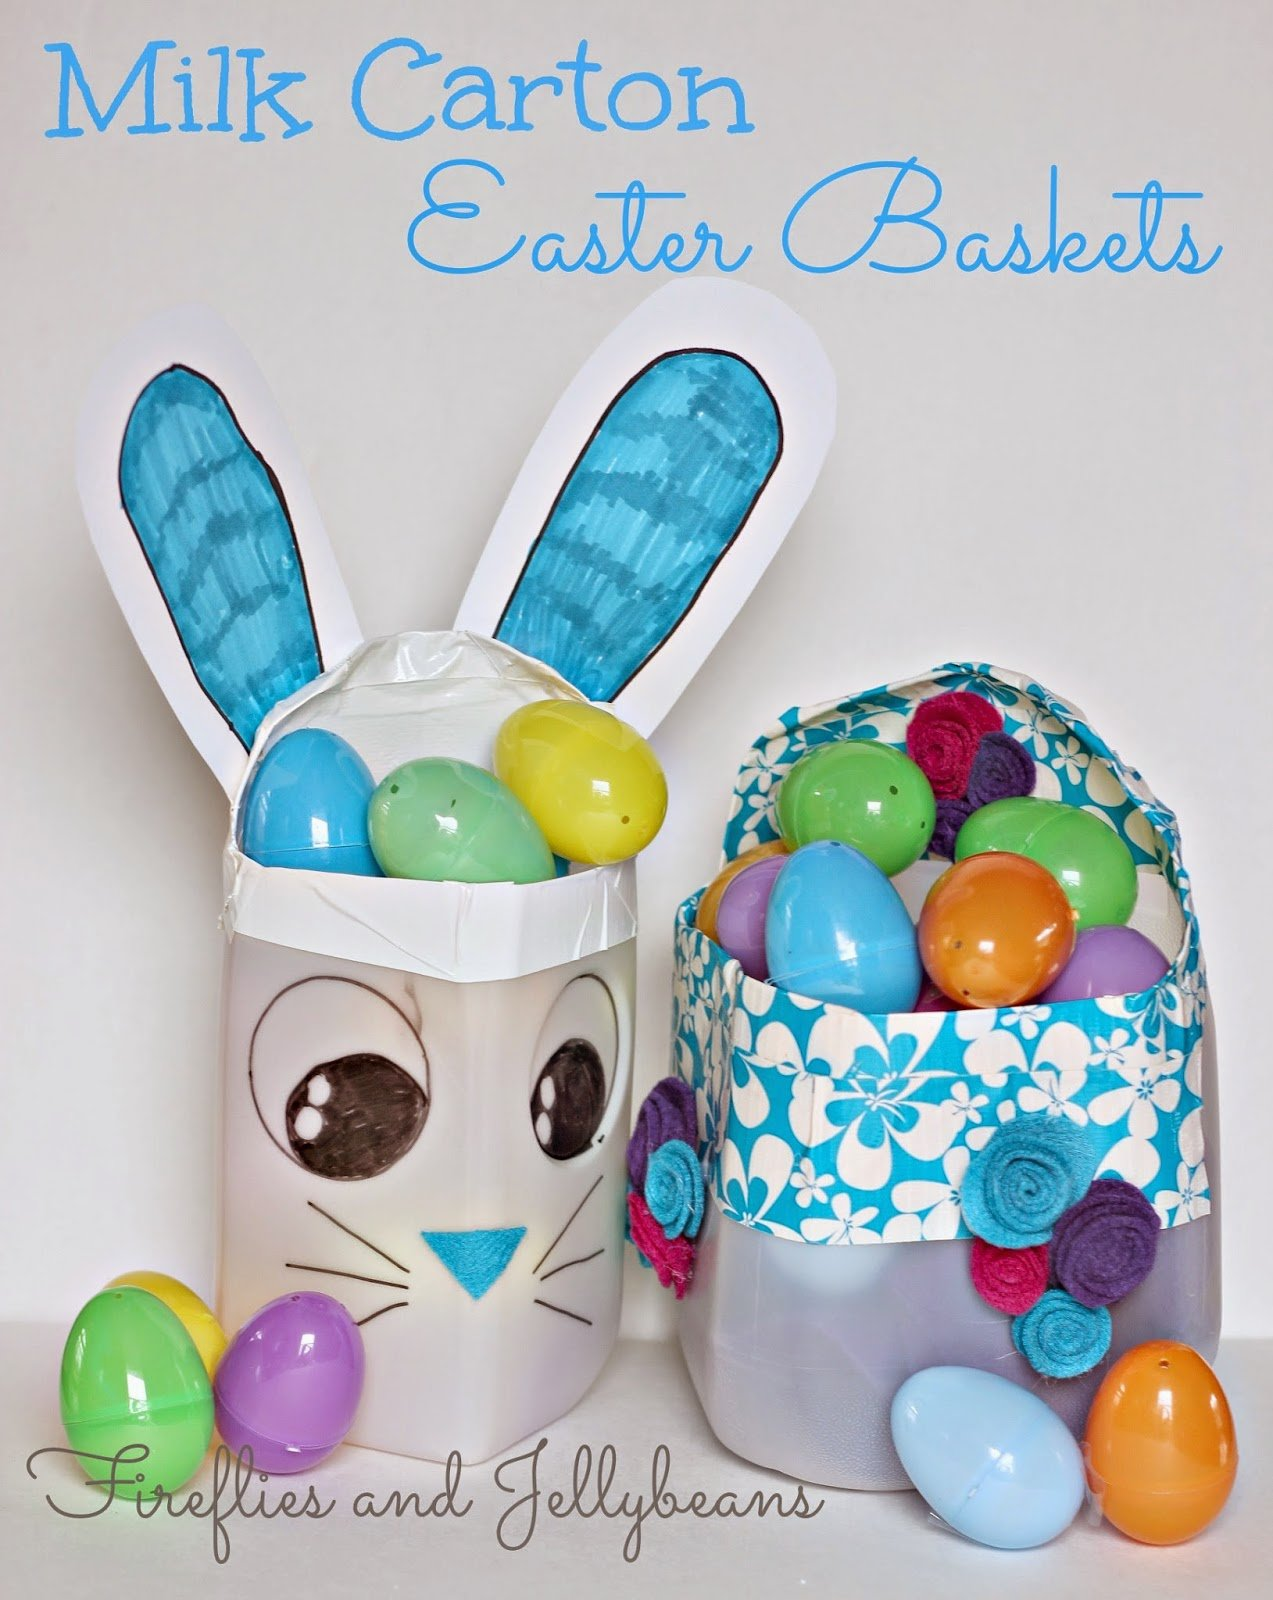 cl5 Milk Carton Easter Basket 1